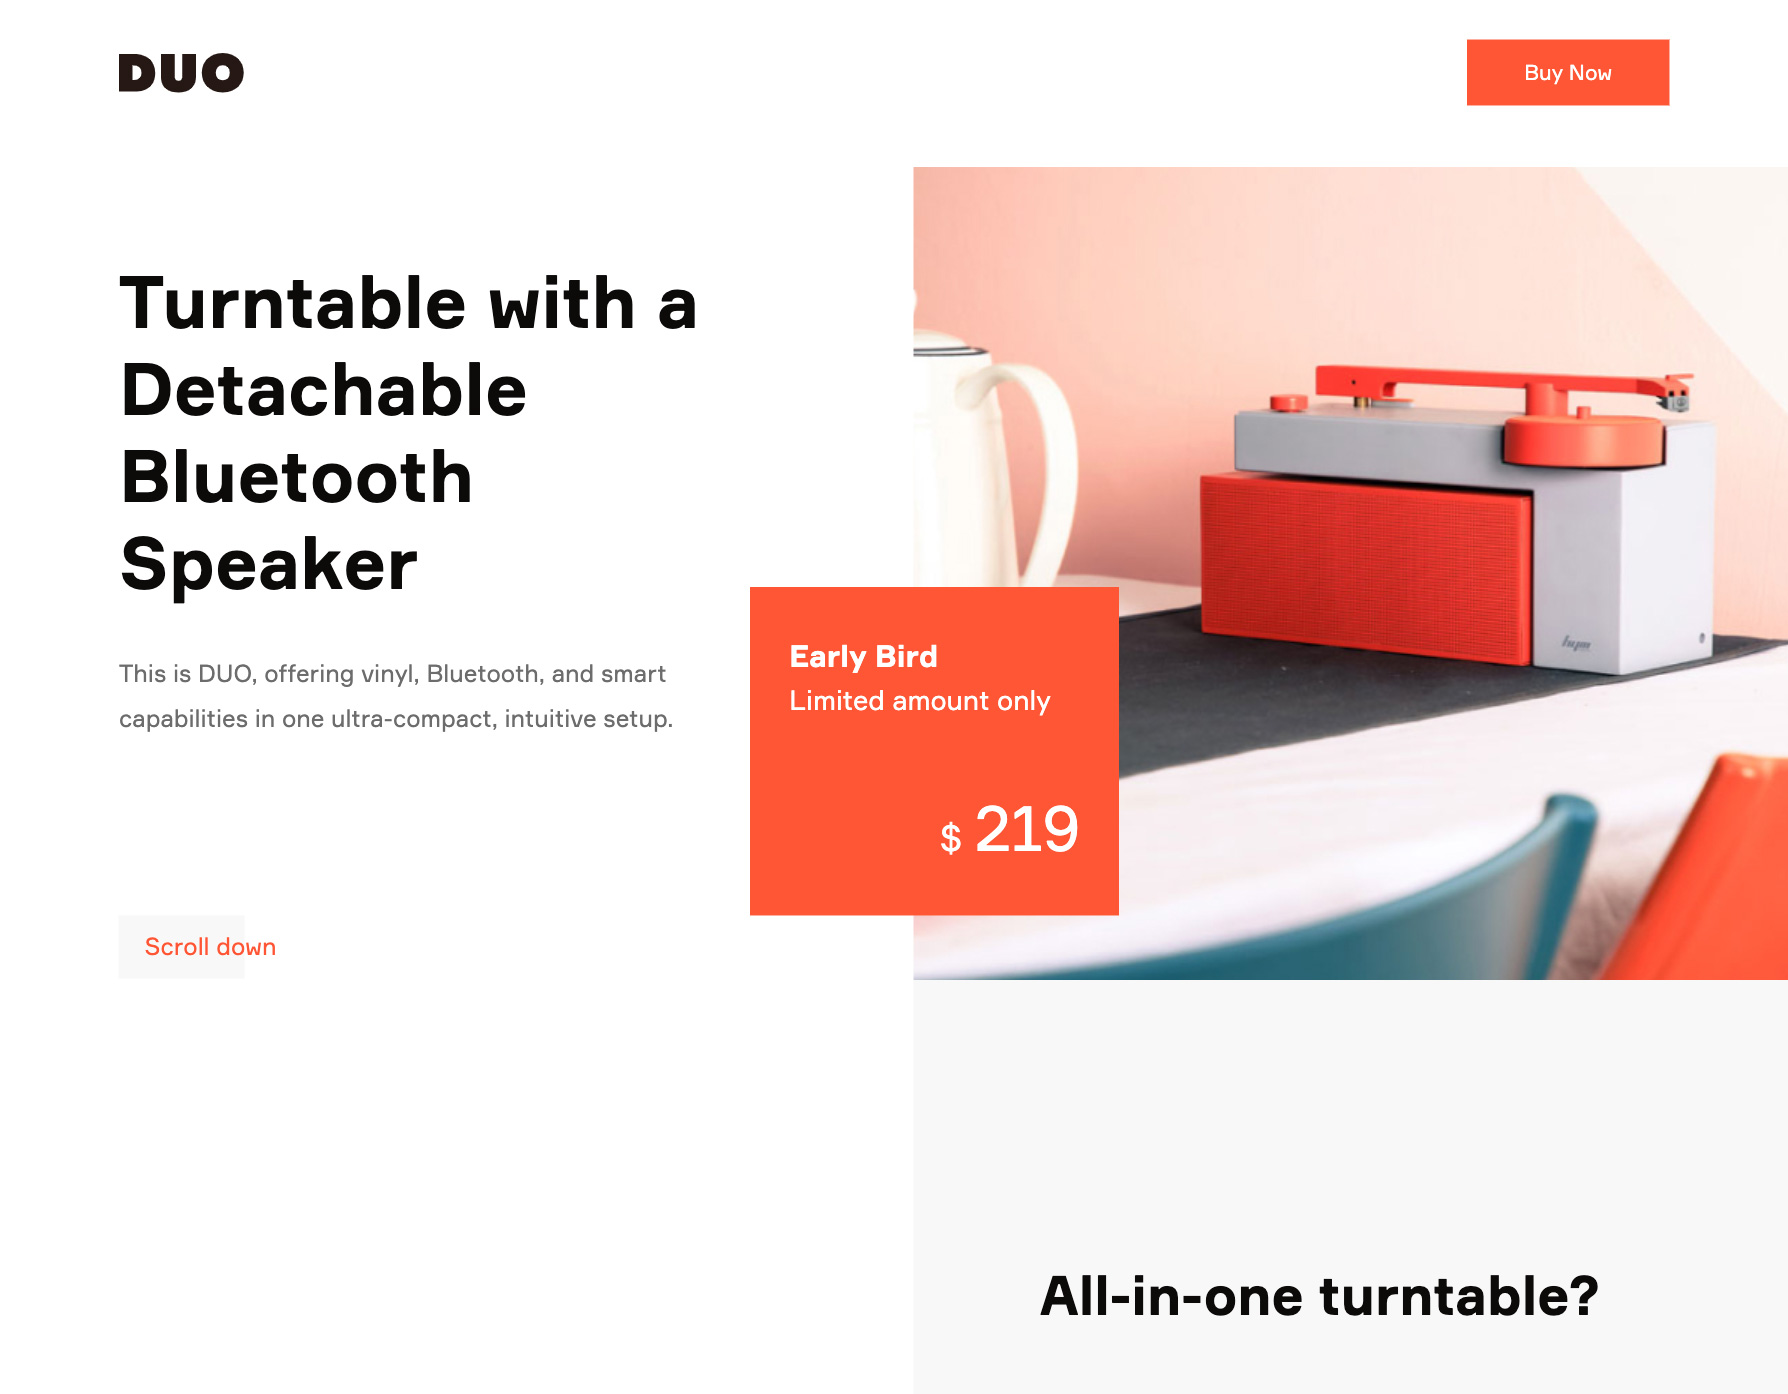 DUO Tutntable - screenshot of the landing page